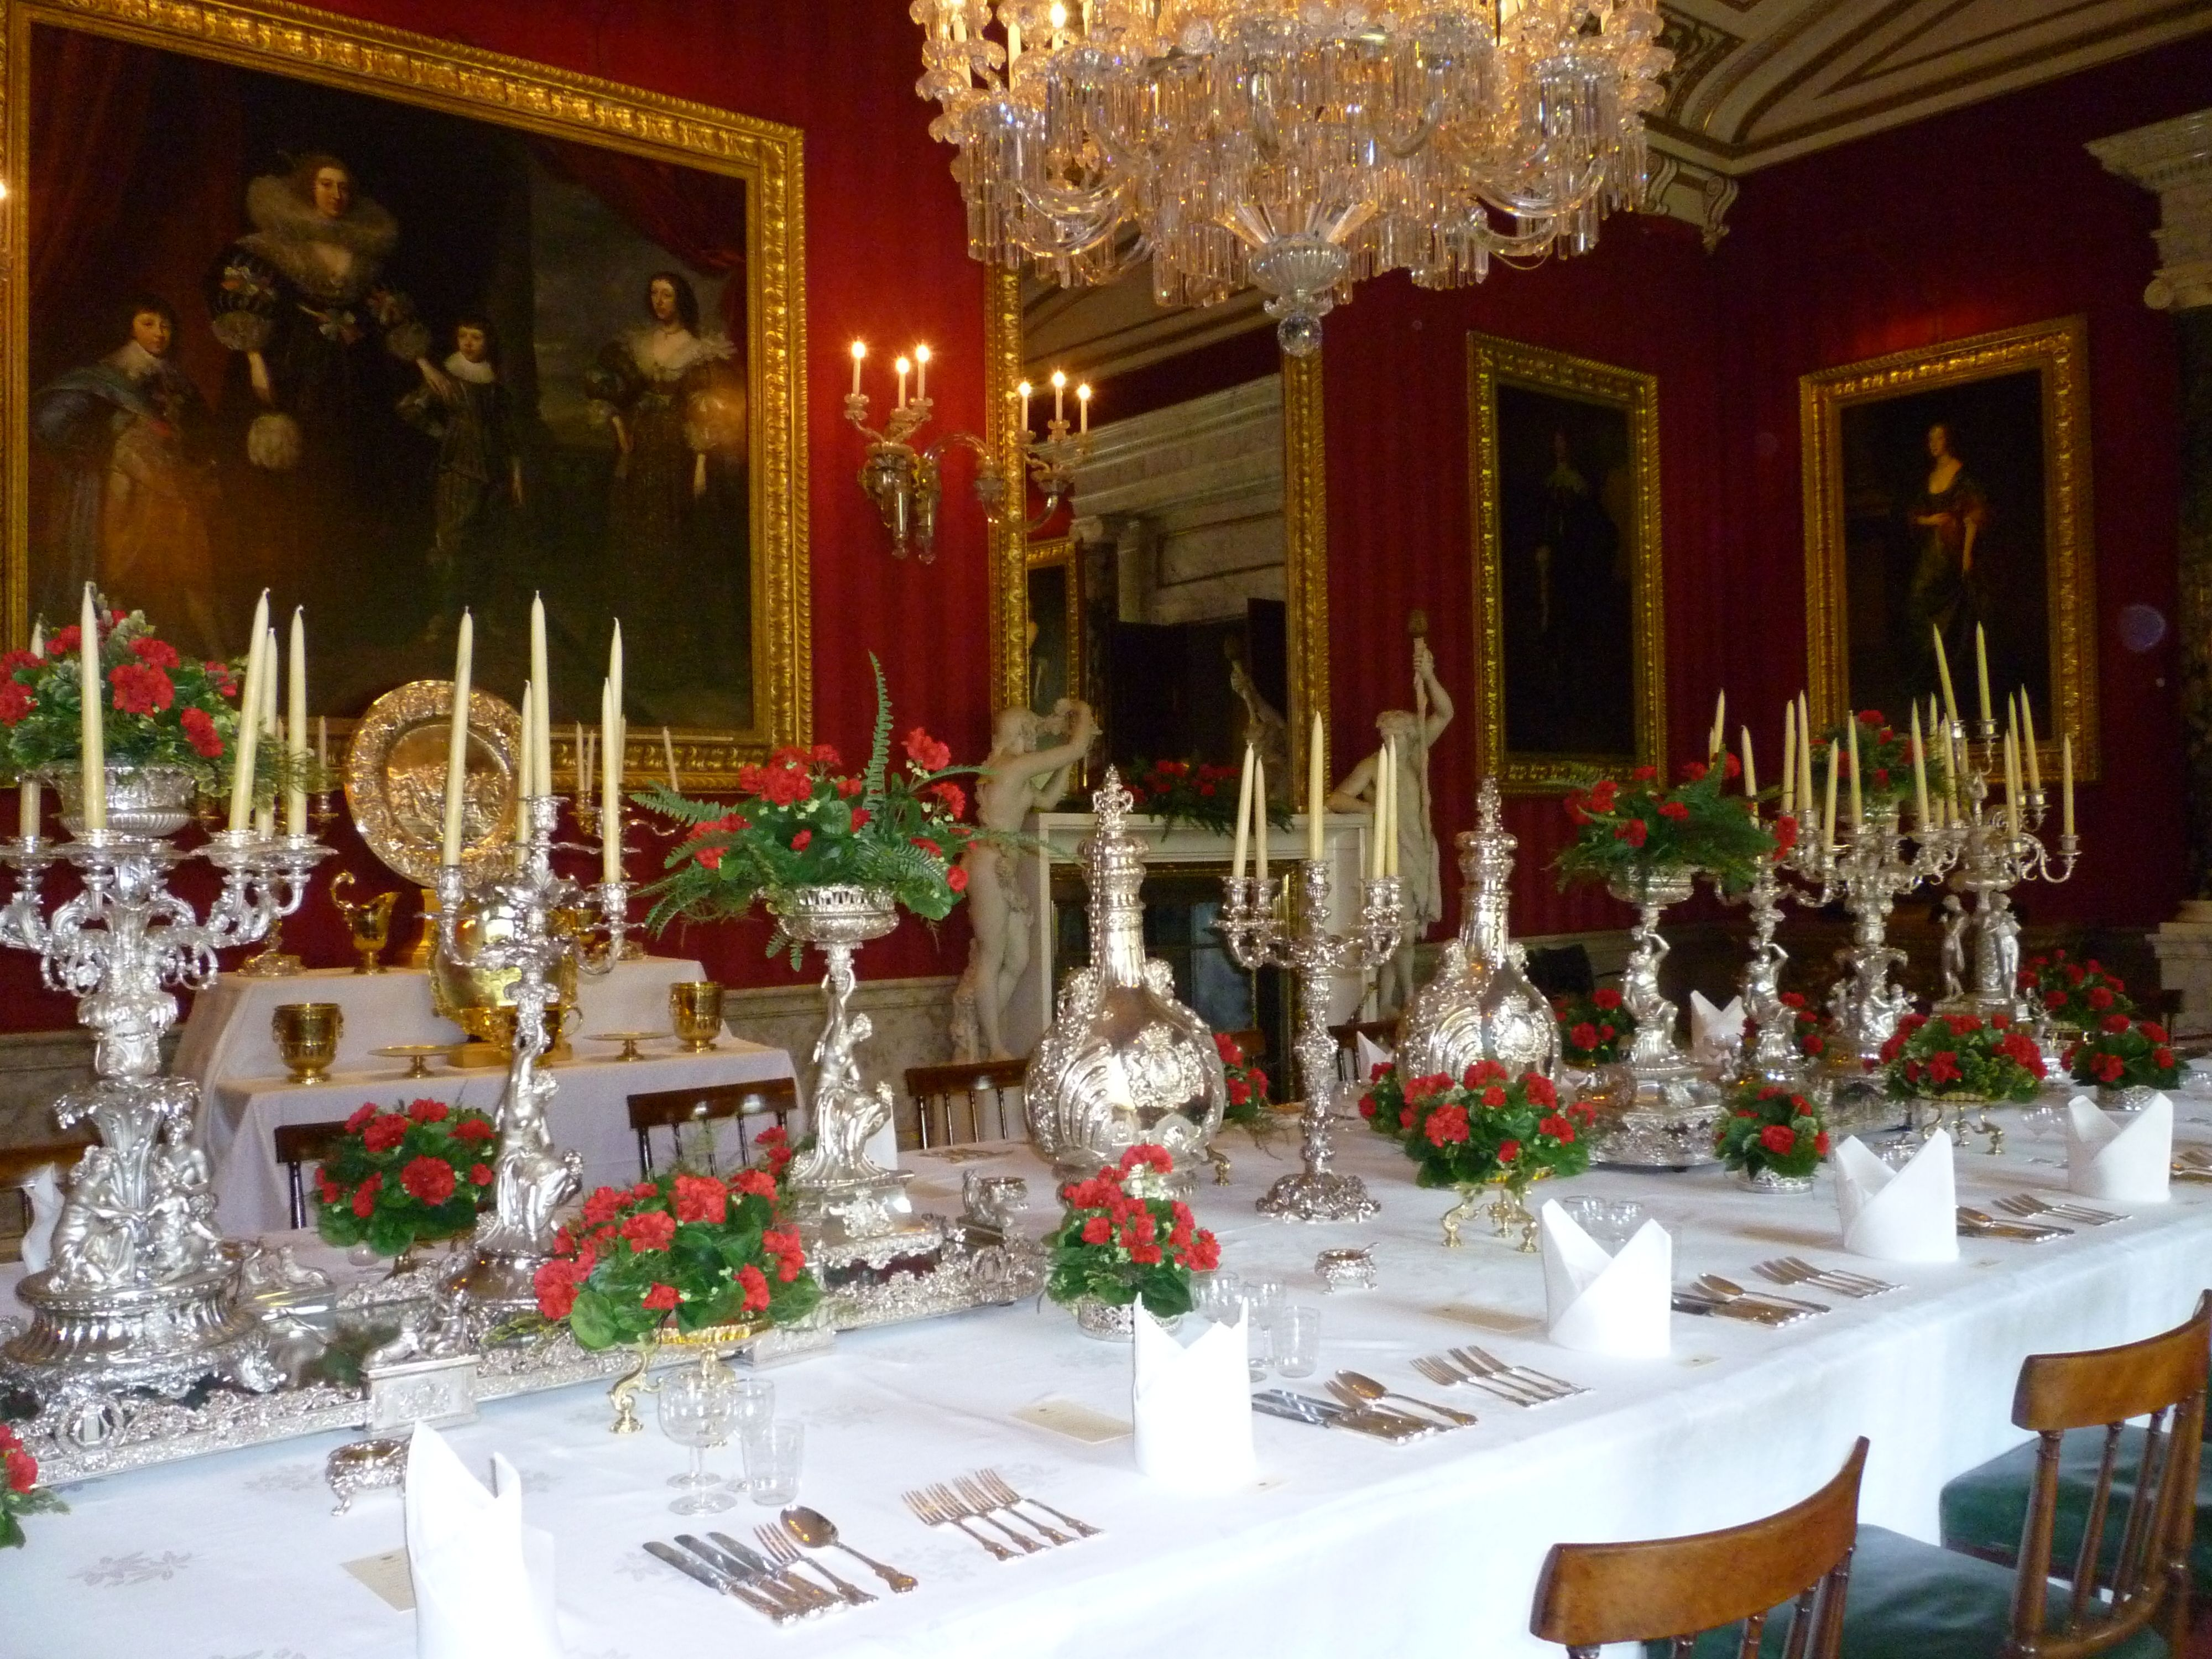 Formal Dining Table Laid For A Large Private Dinner Party At Chatsworth House